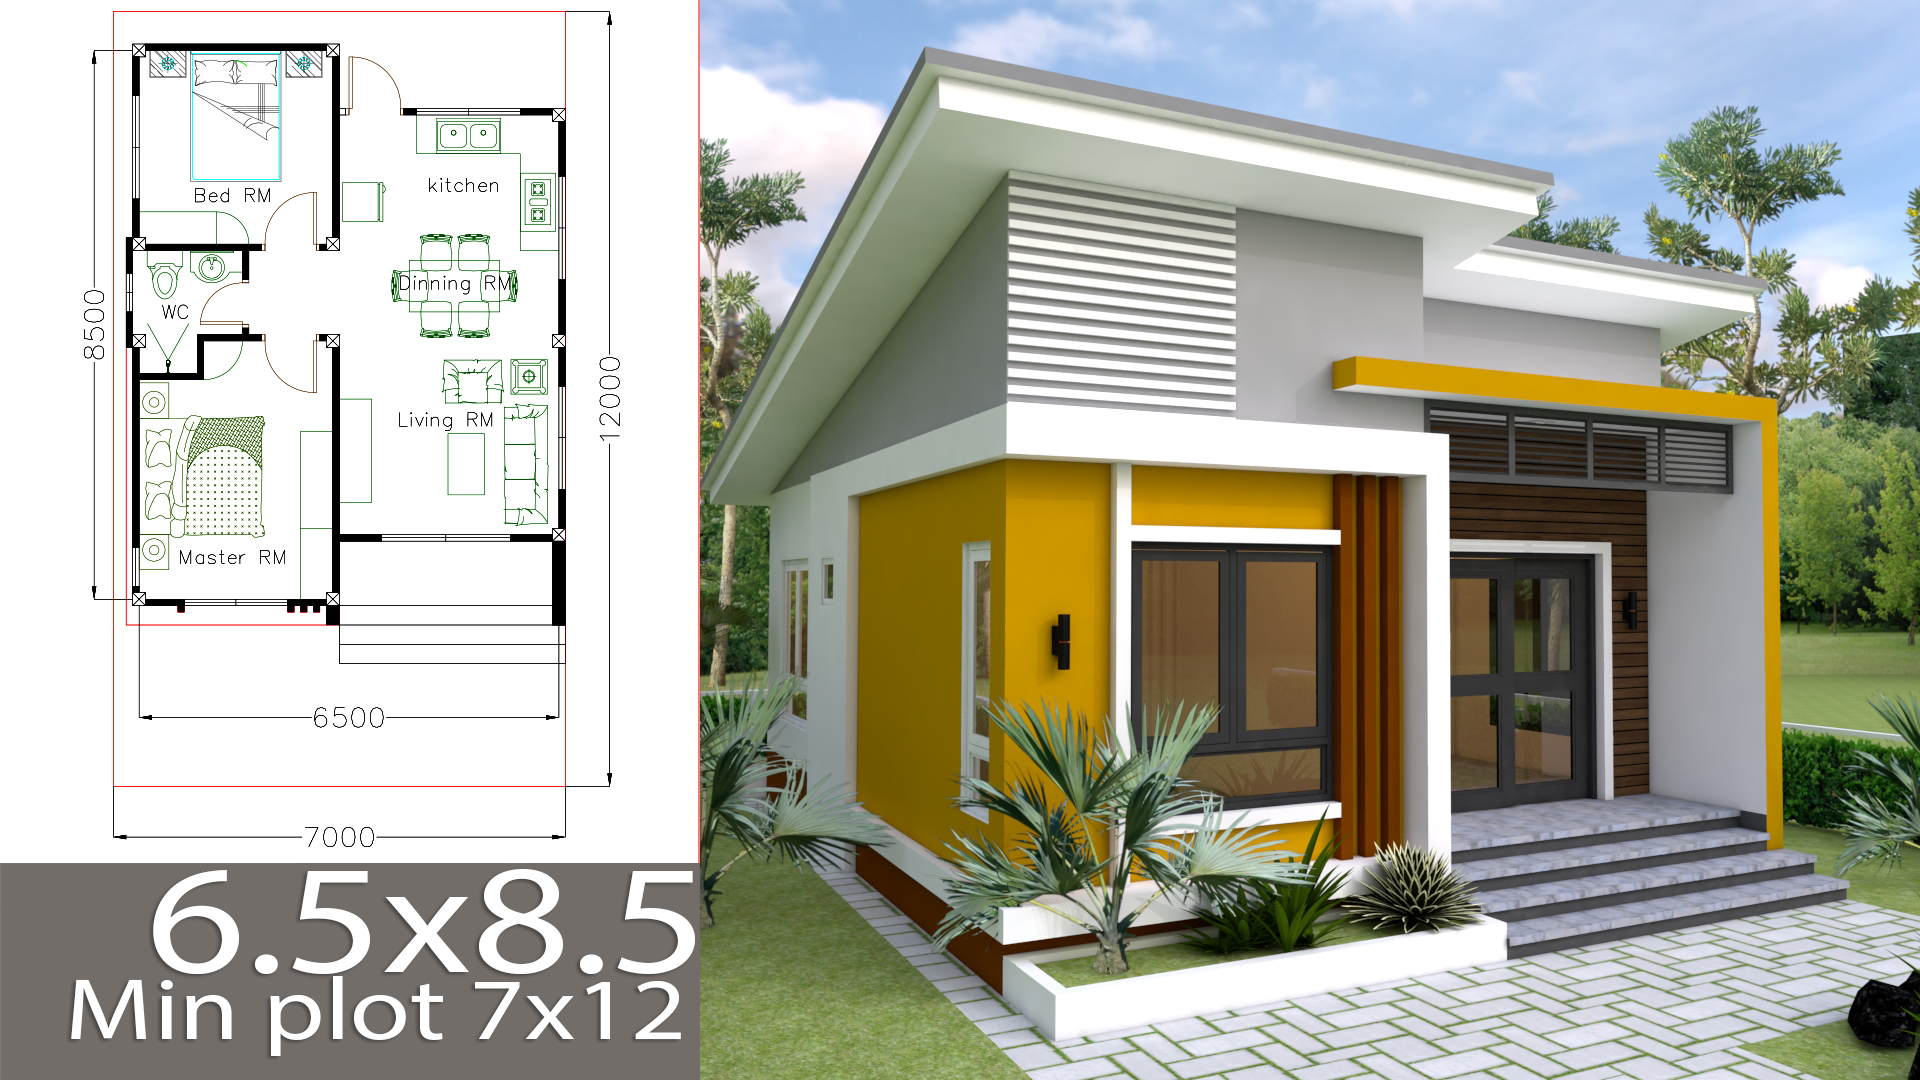 Small Home Design Plan 6 5x8 5m With 2 Bedrooms